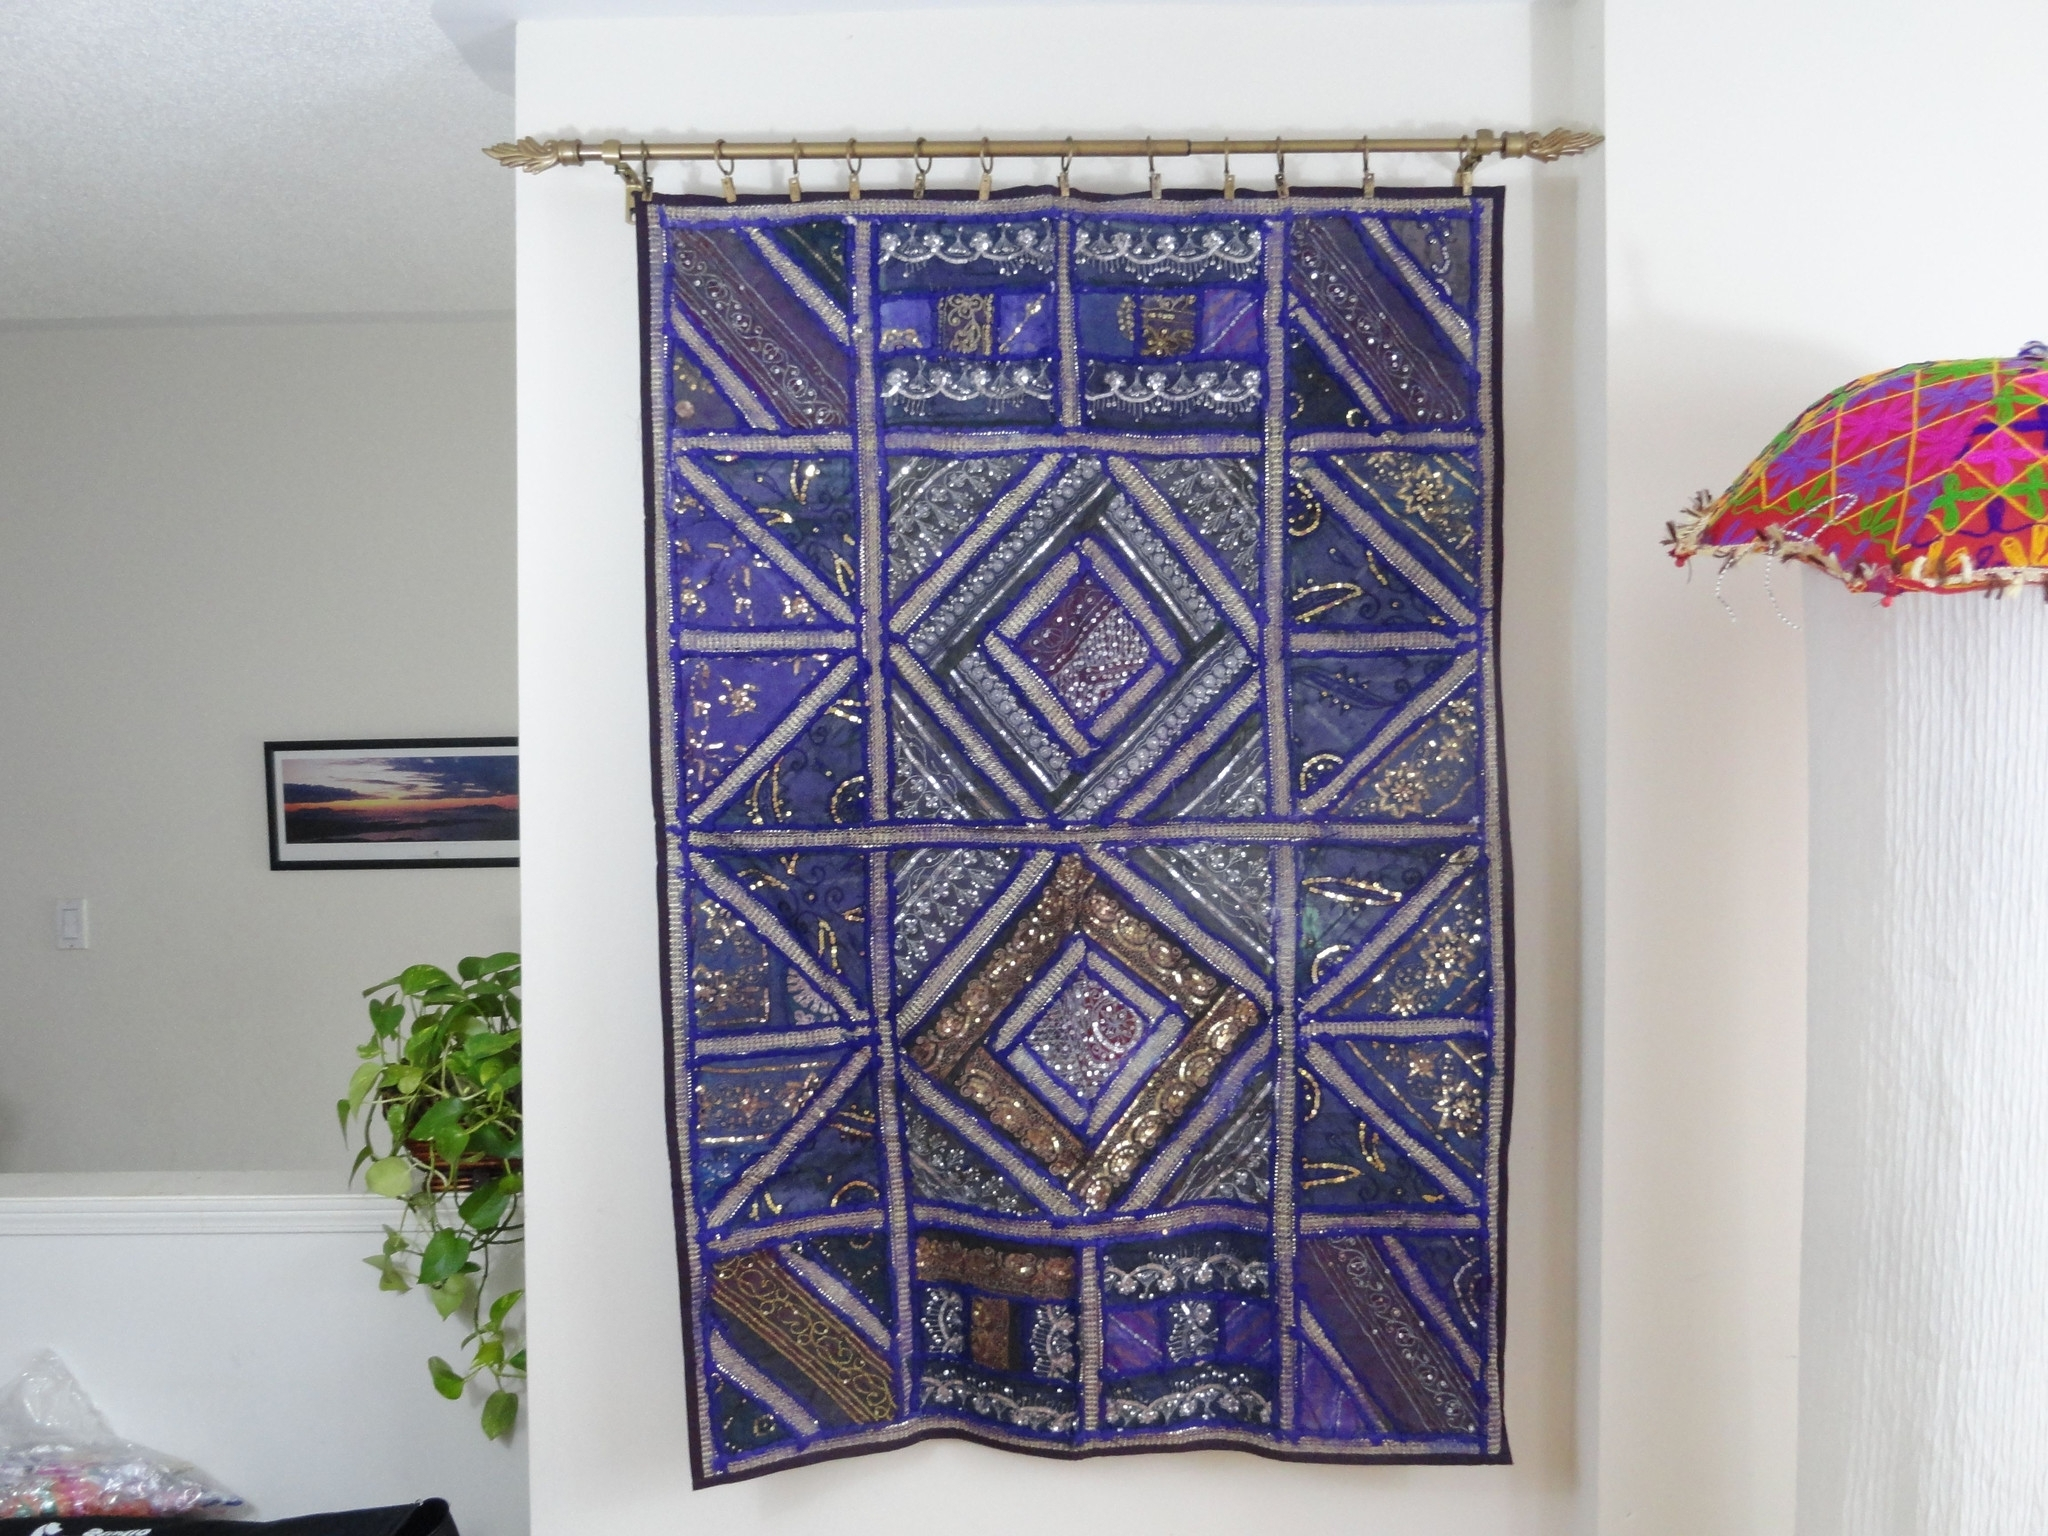 Fabric Wall Decor Ideas Elitflat Installing Electrical For Your Basement 21 Things You39ll Need Unique